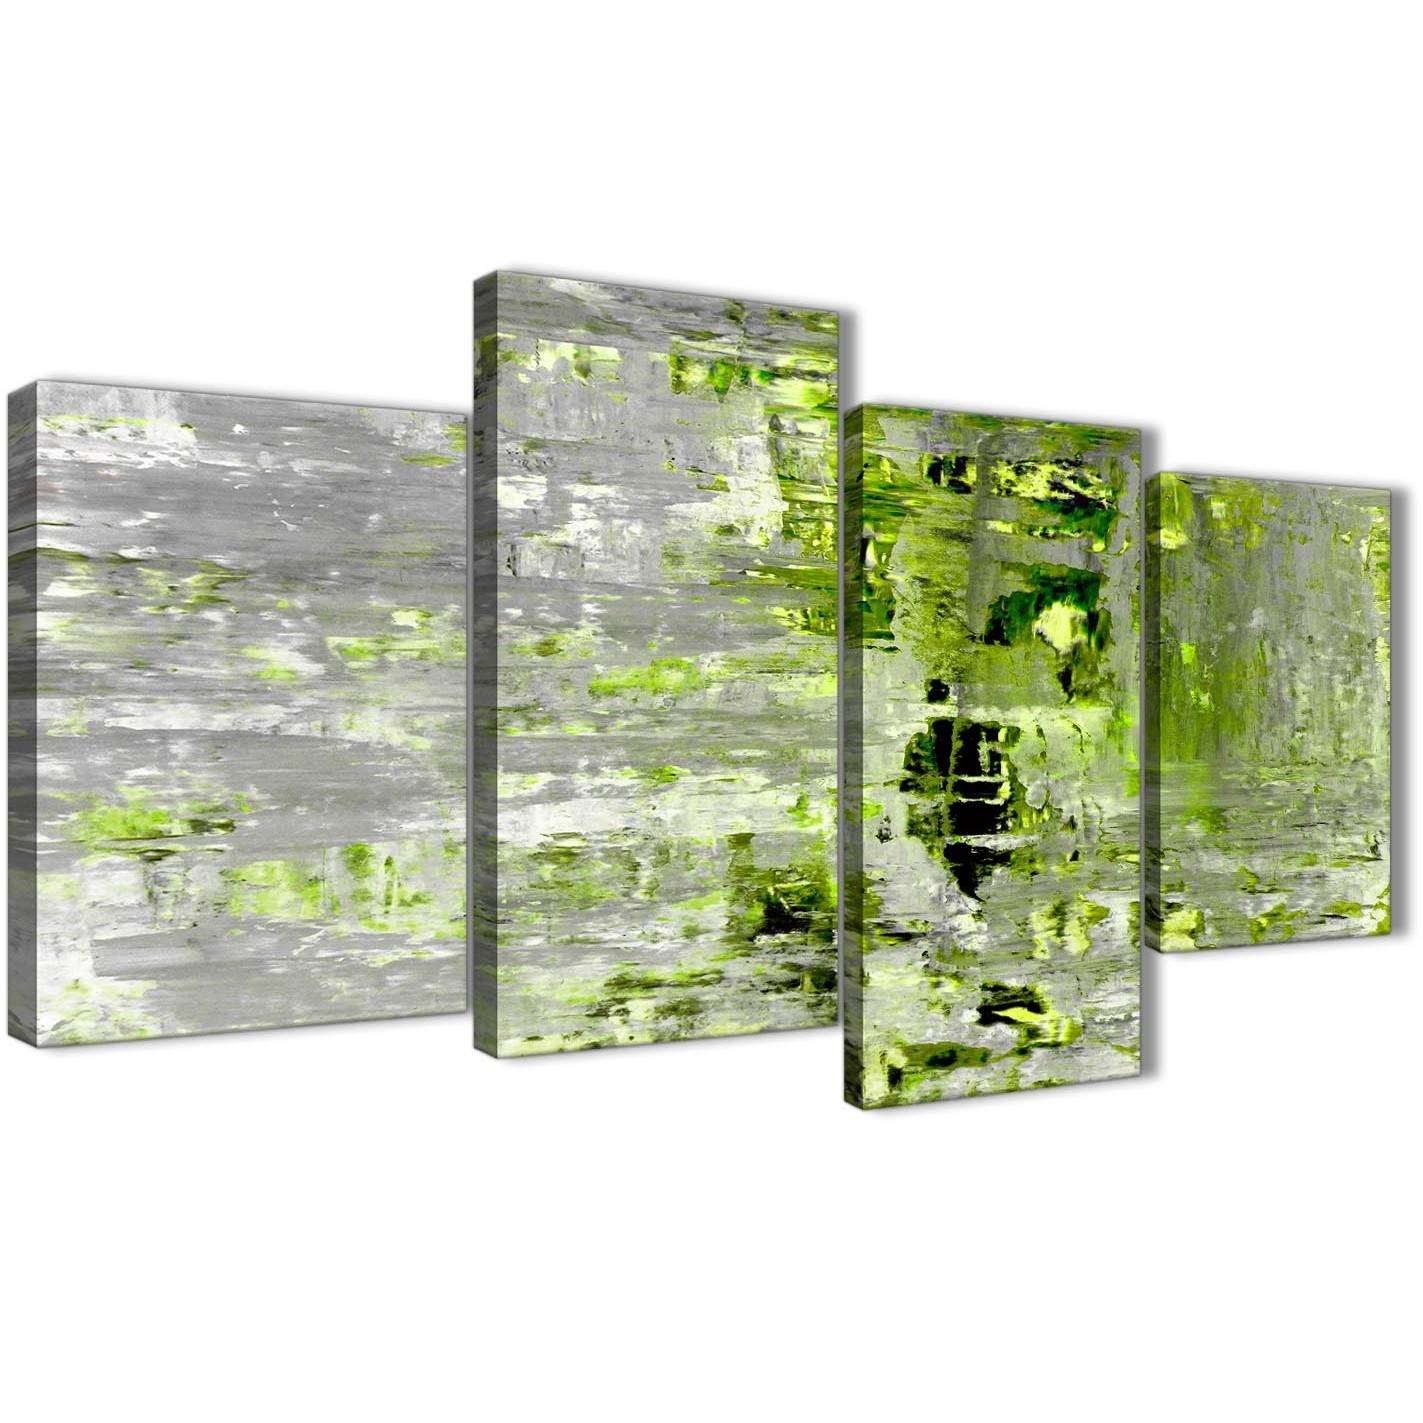 Large Lime Green Grey Abstract Painting Wall Art Print Canvas Throughout Most Up To Date Lime Green Abstract Wall Art (Gallery 10 of 20)